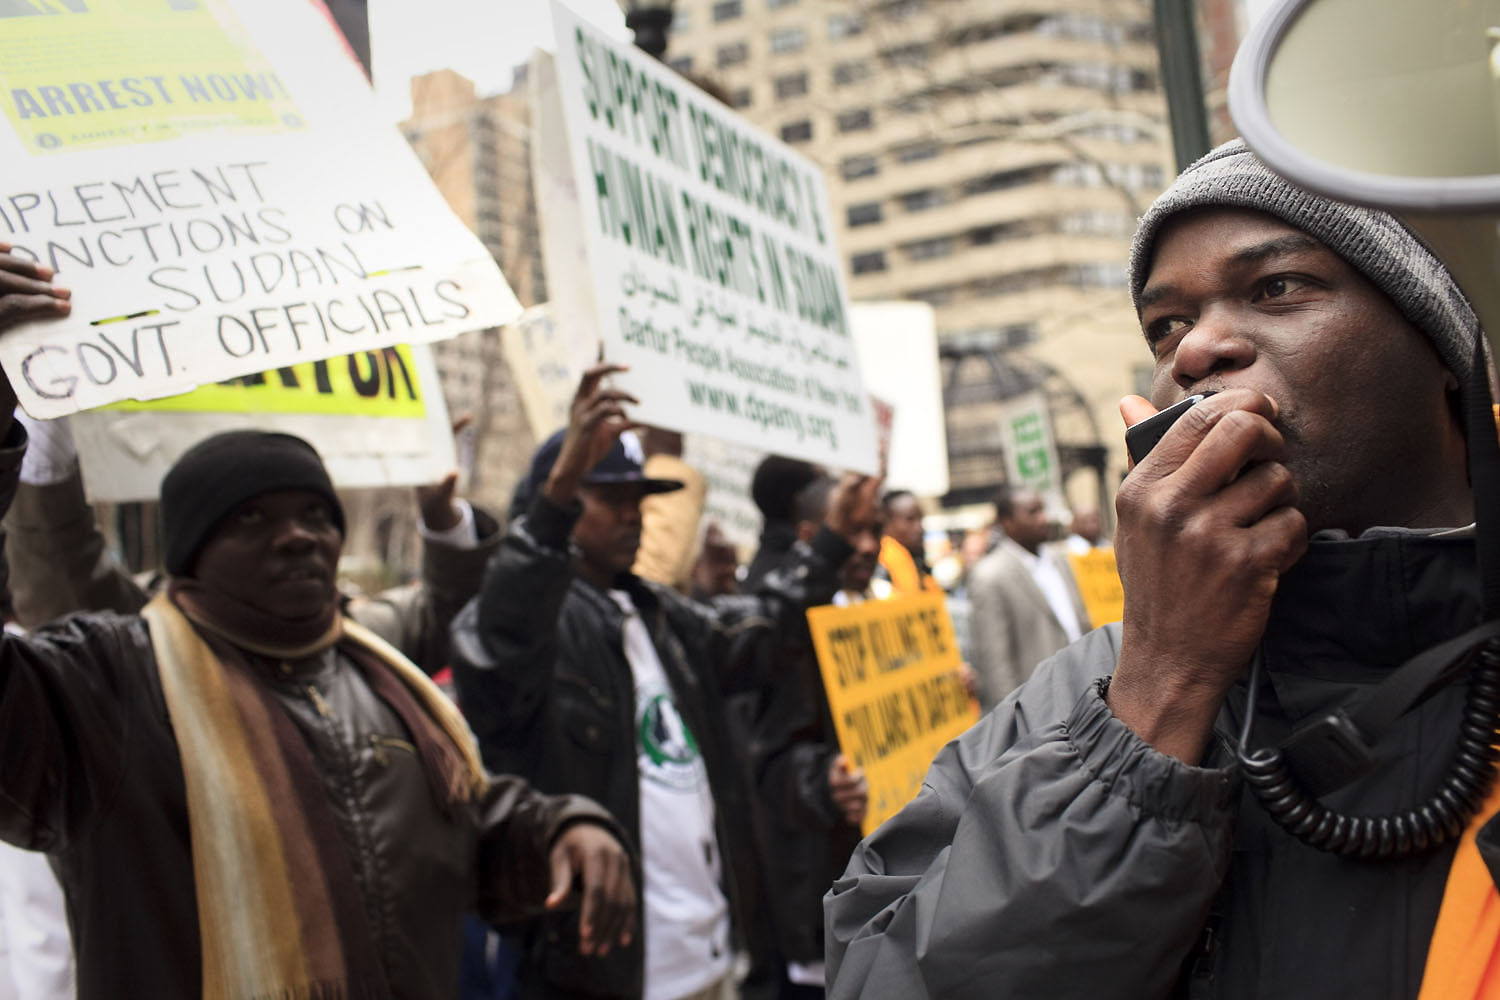 Members of the Darfurian community protest against the Sudanese government near the United Nations.